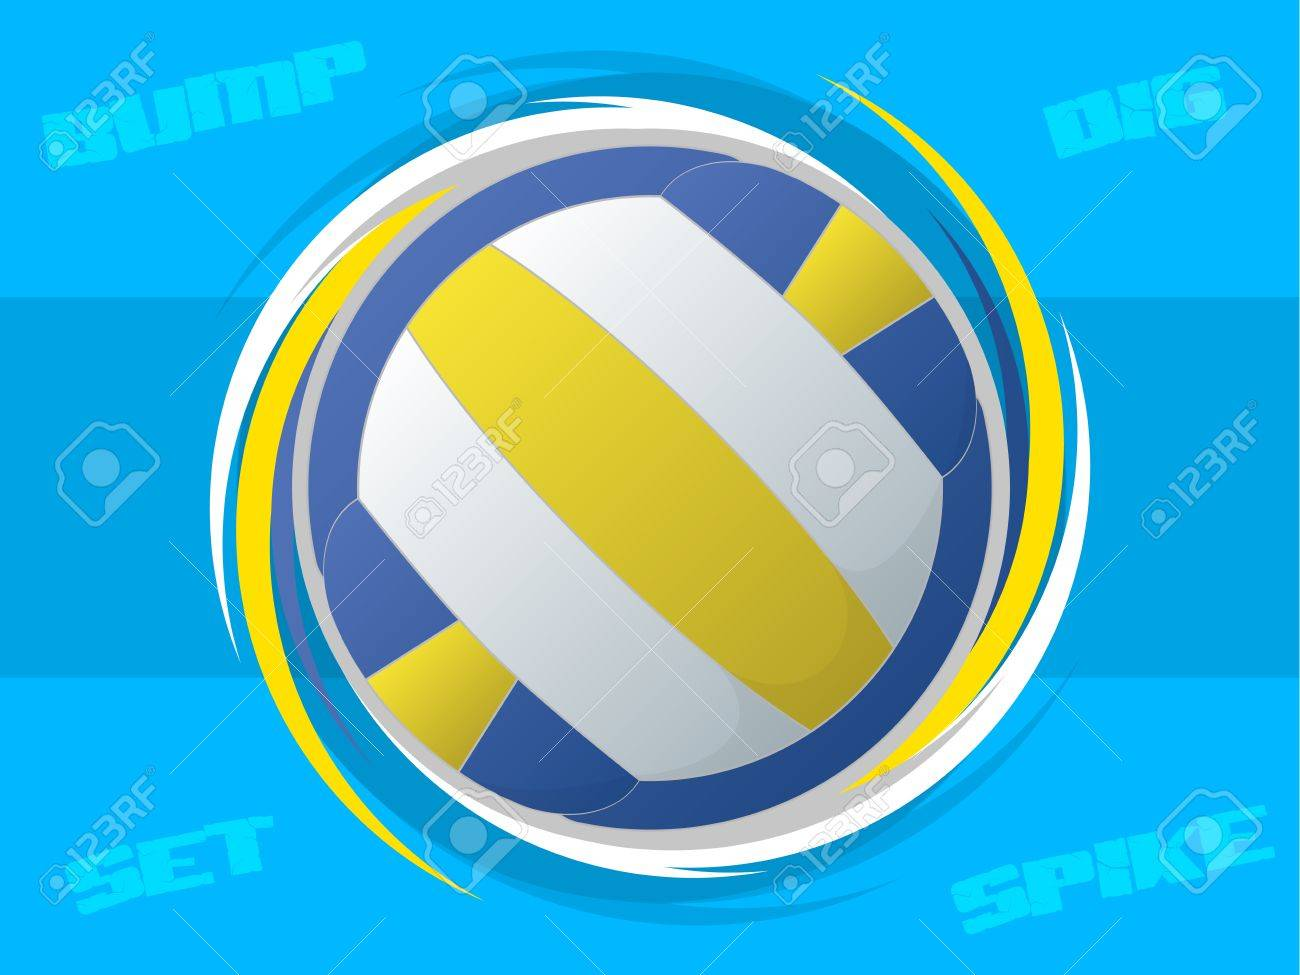 Volleyball Icon Stock Vector - 16019138